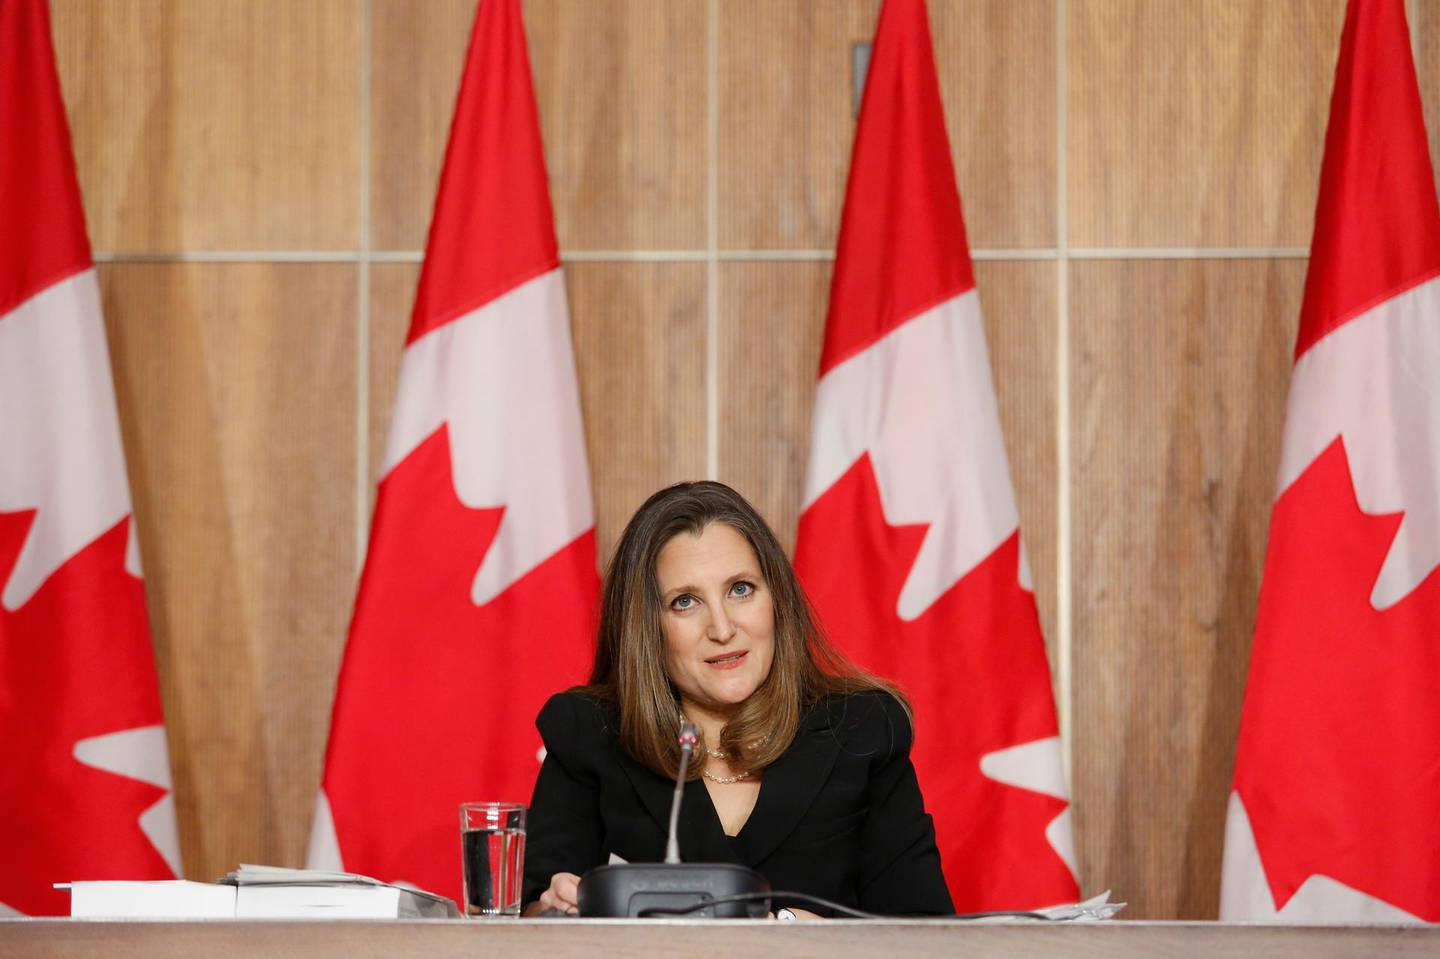 Canada's Finance Minister Chrystia Freeland speaks during a press conference on Parliament Hill in Ottawa, Ontario, Canada, April 19, 2021. REUTERS/Patrick Doyle